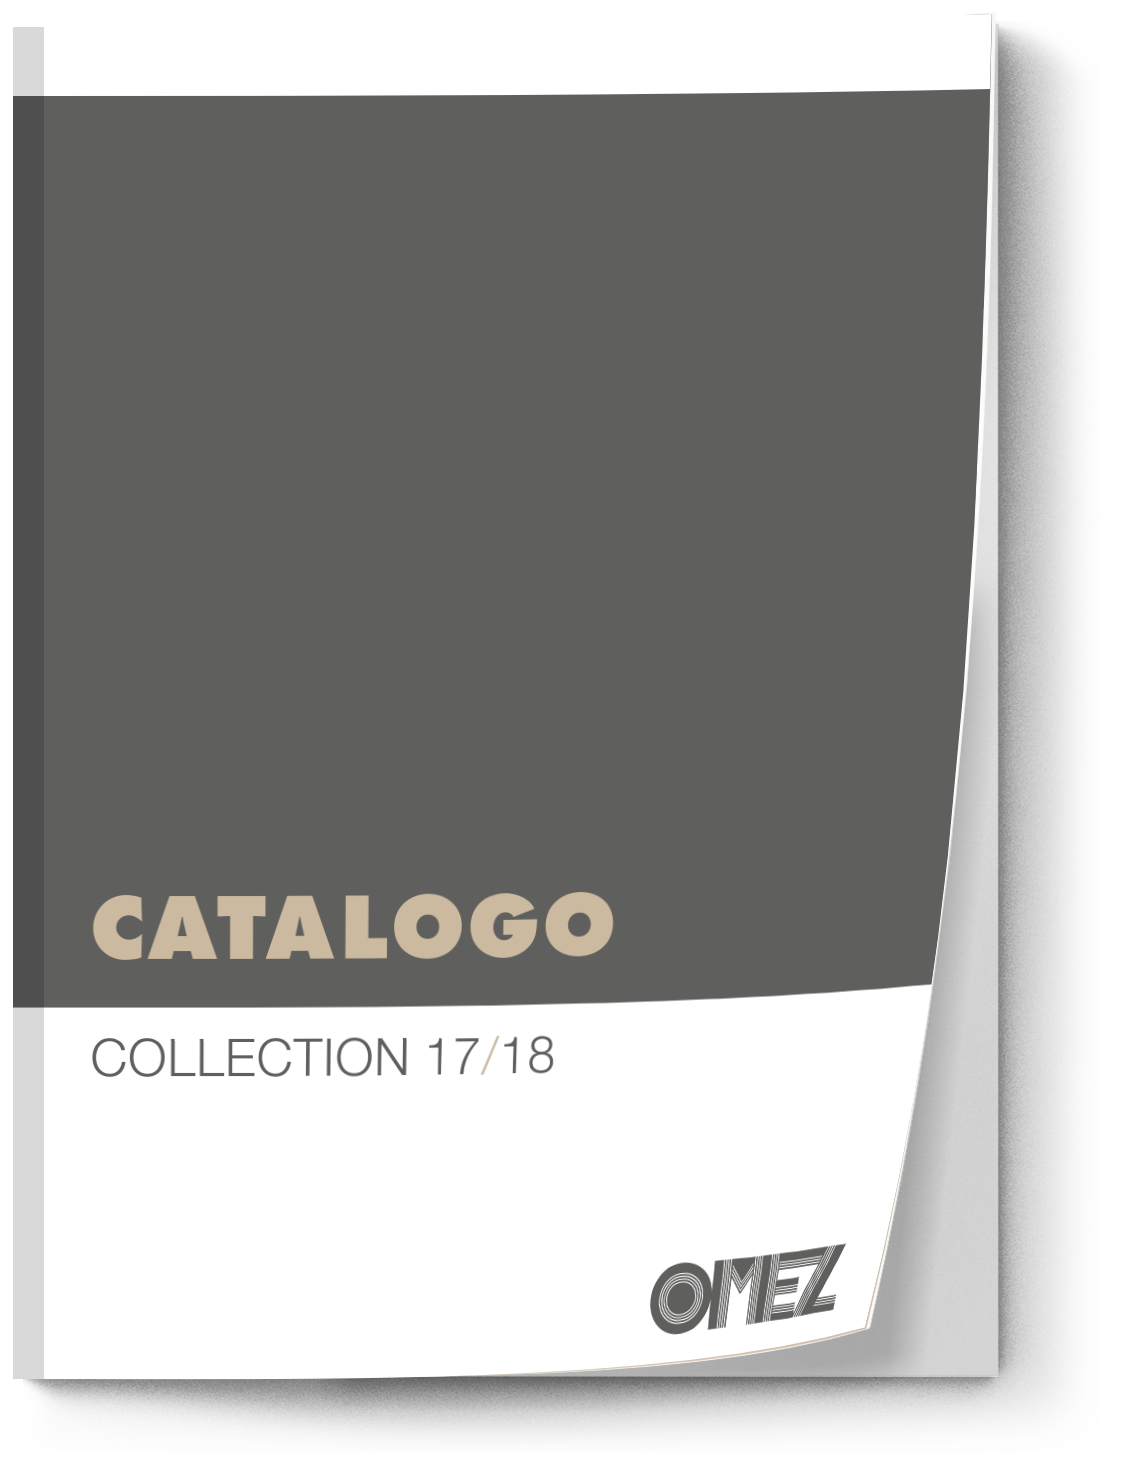 catalogo-omez-collection-17-18